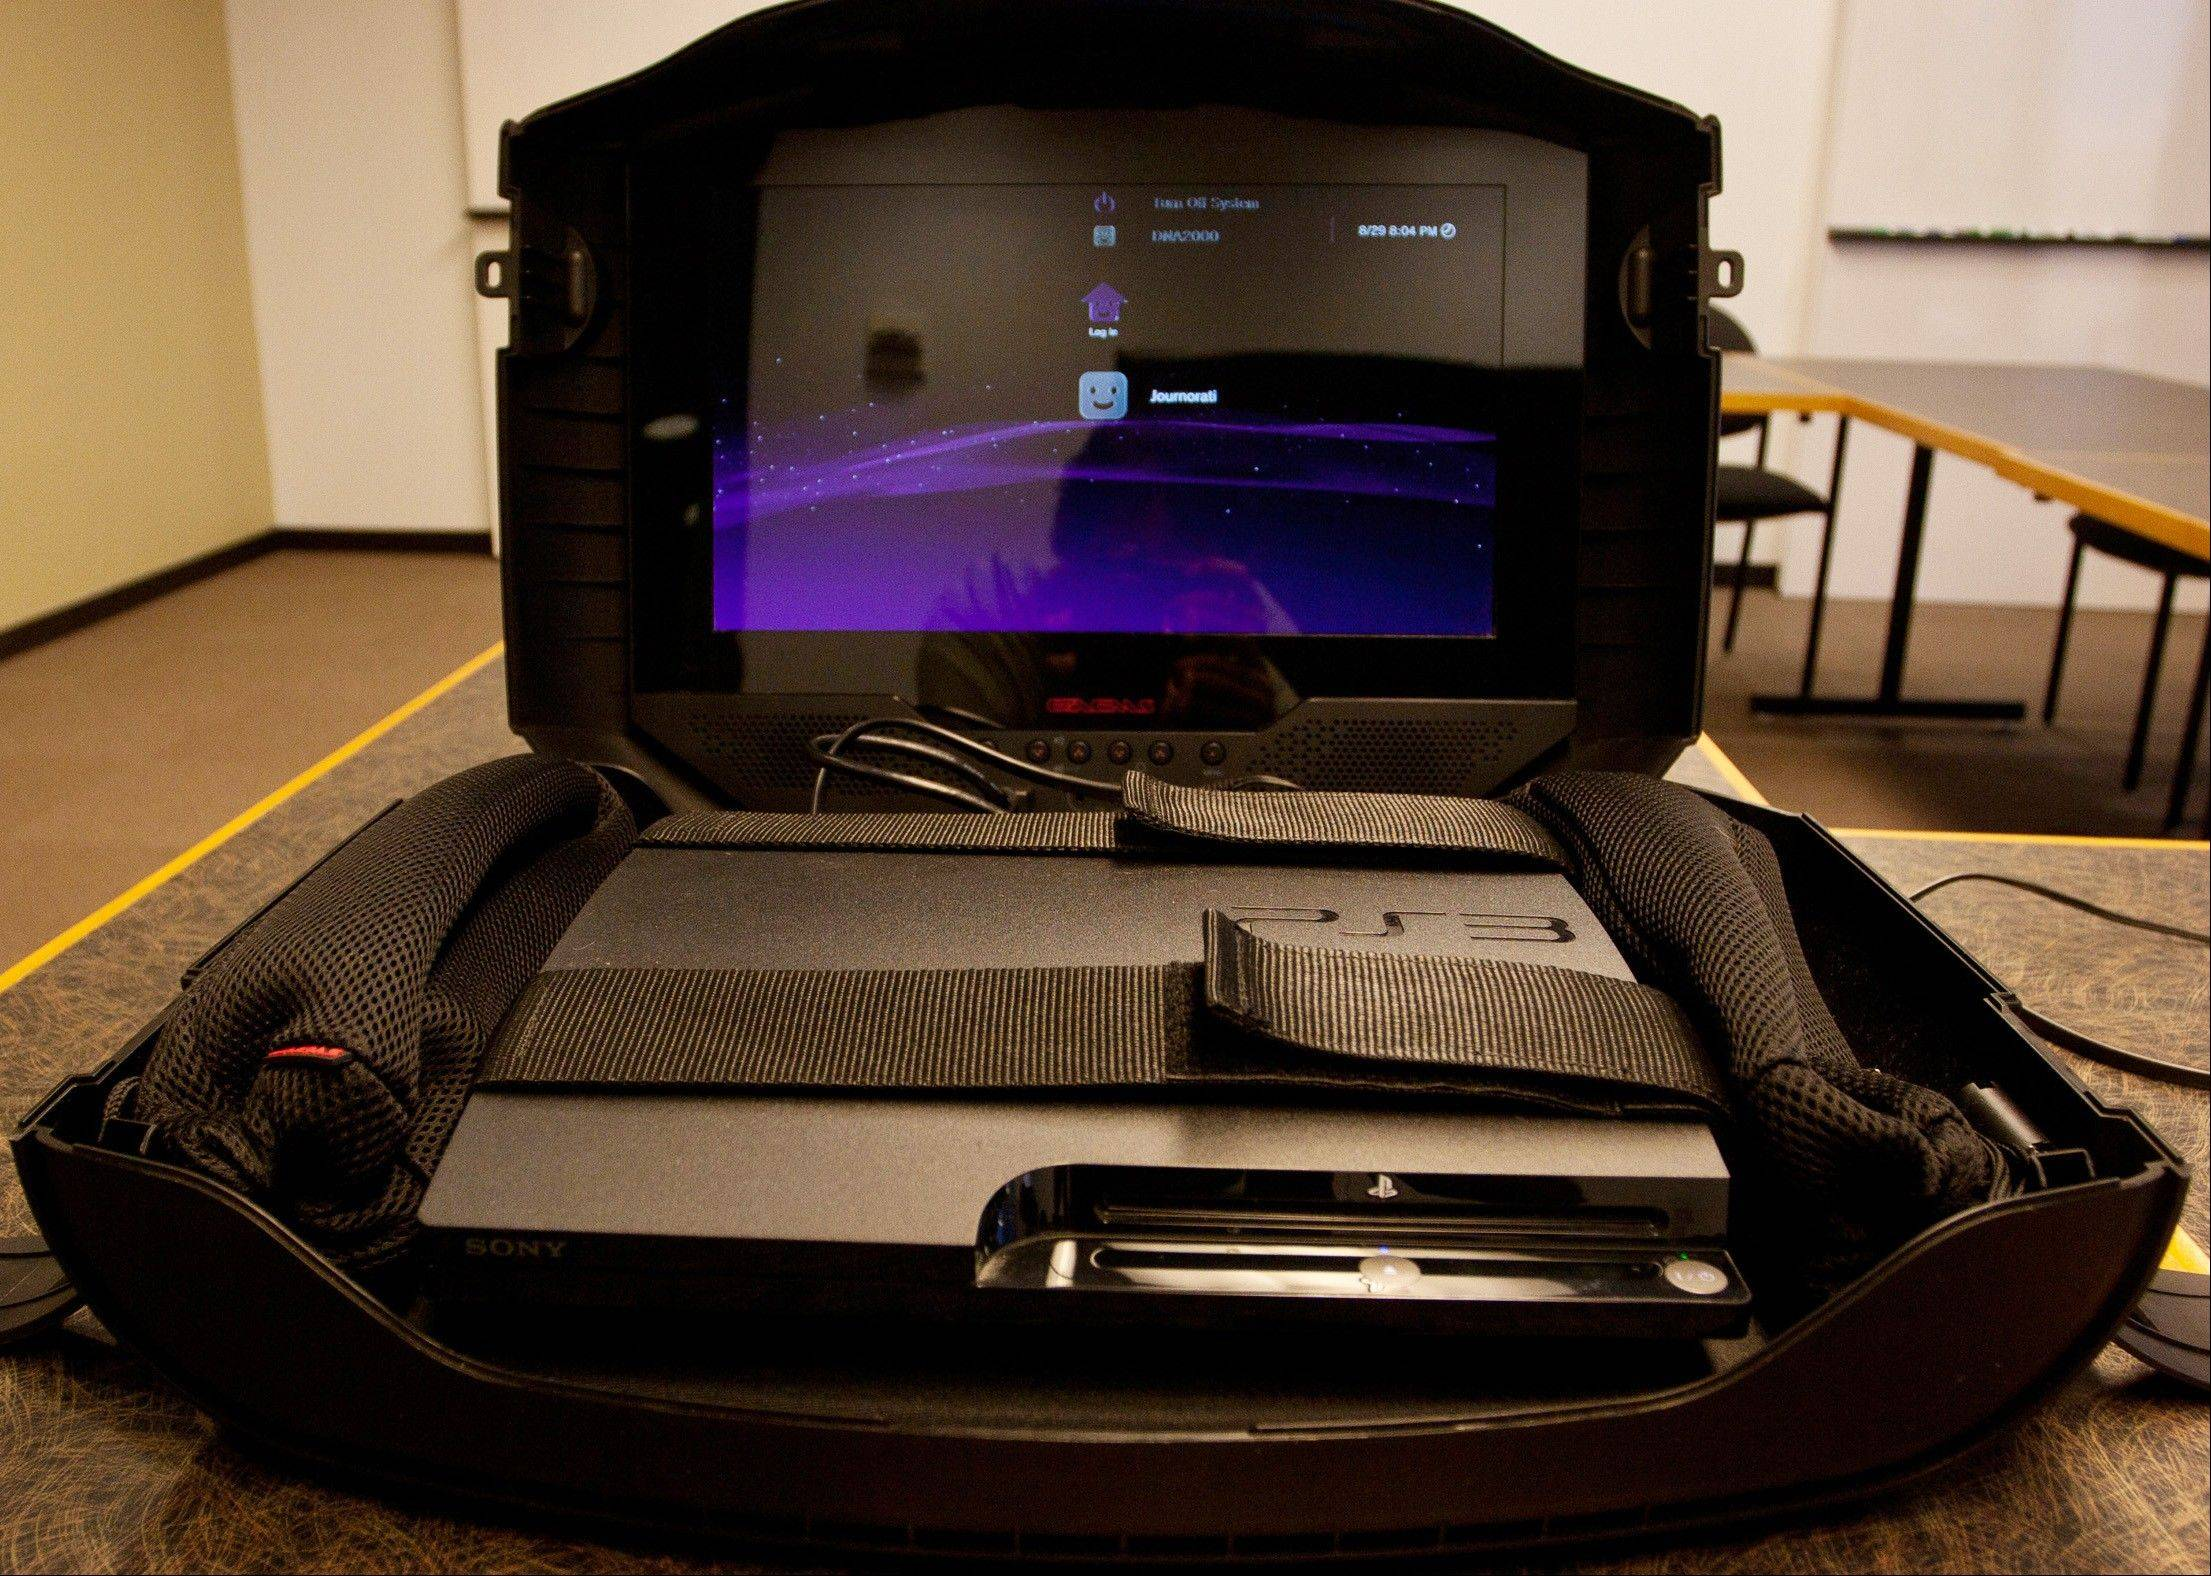 The GAEMS G155, a rugged game console case with a built-in high-definition display, is displayed Monday, Aug. 29, 2011 in Atlanta, Ga. The GAEMS case allows the user to take an Xbox 360 or Sony PlayStation system and accesories on the road.